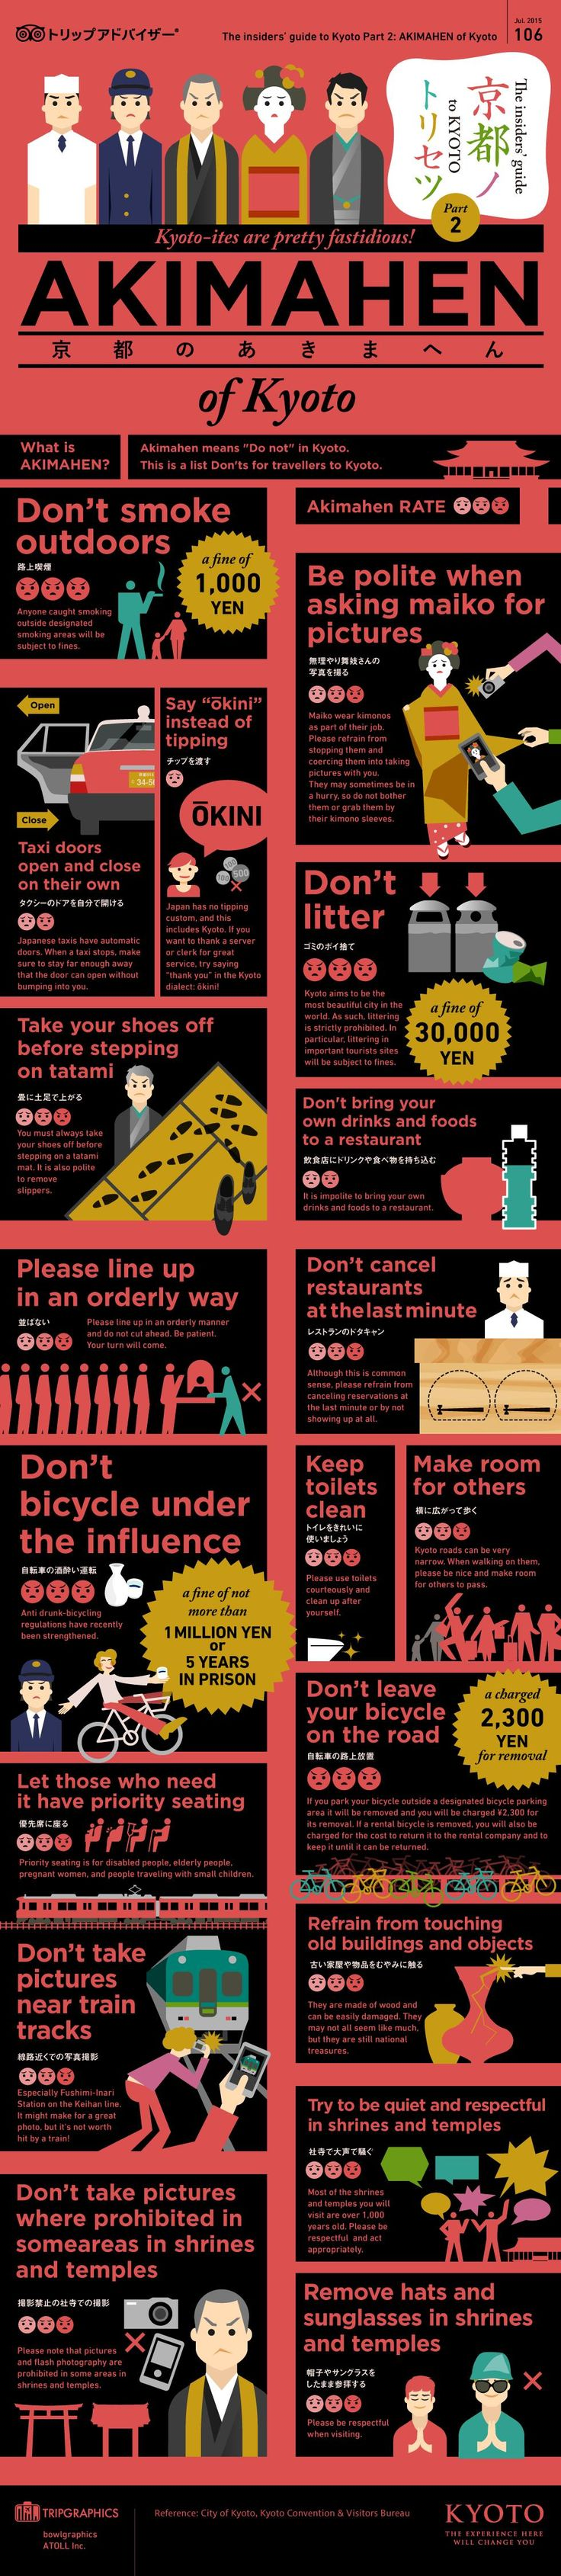 画像:京都のあきまへん ~AKIMAHEN of Kyoto~ Don't do this in Kyoto. TripAdvisorJapan infographic